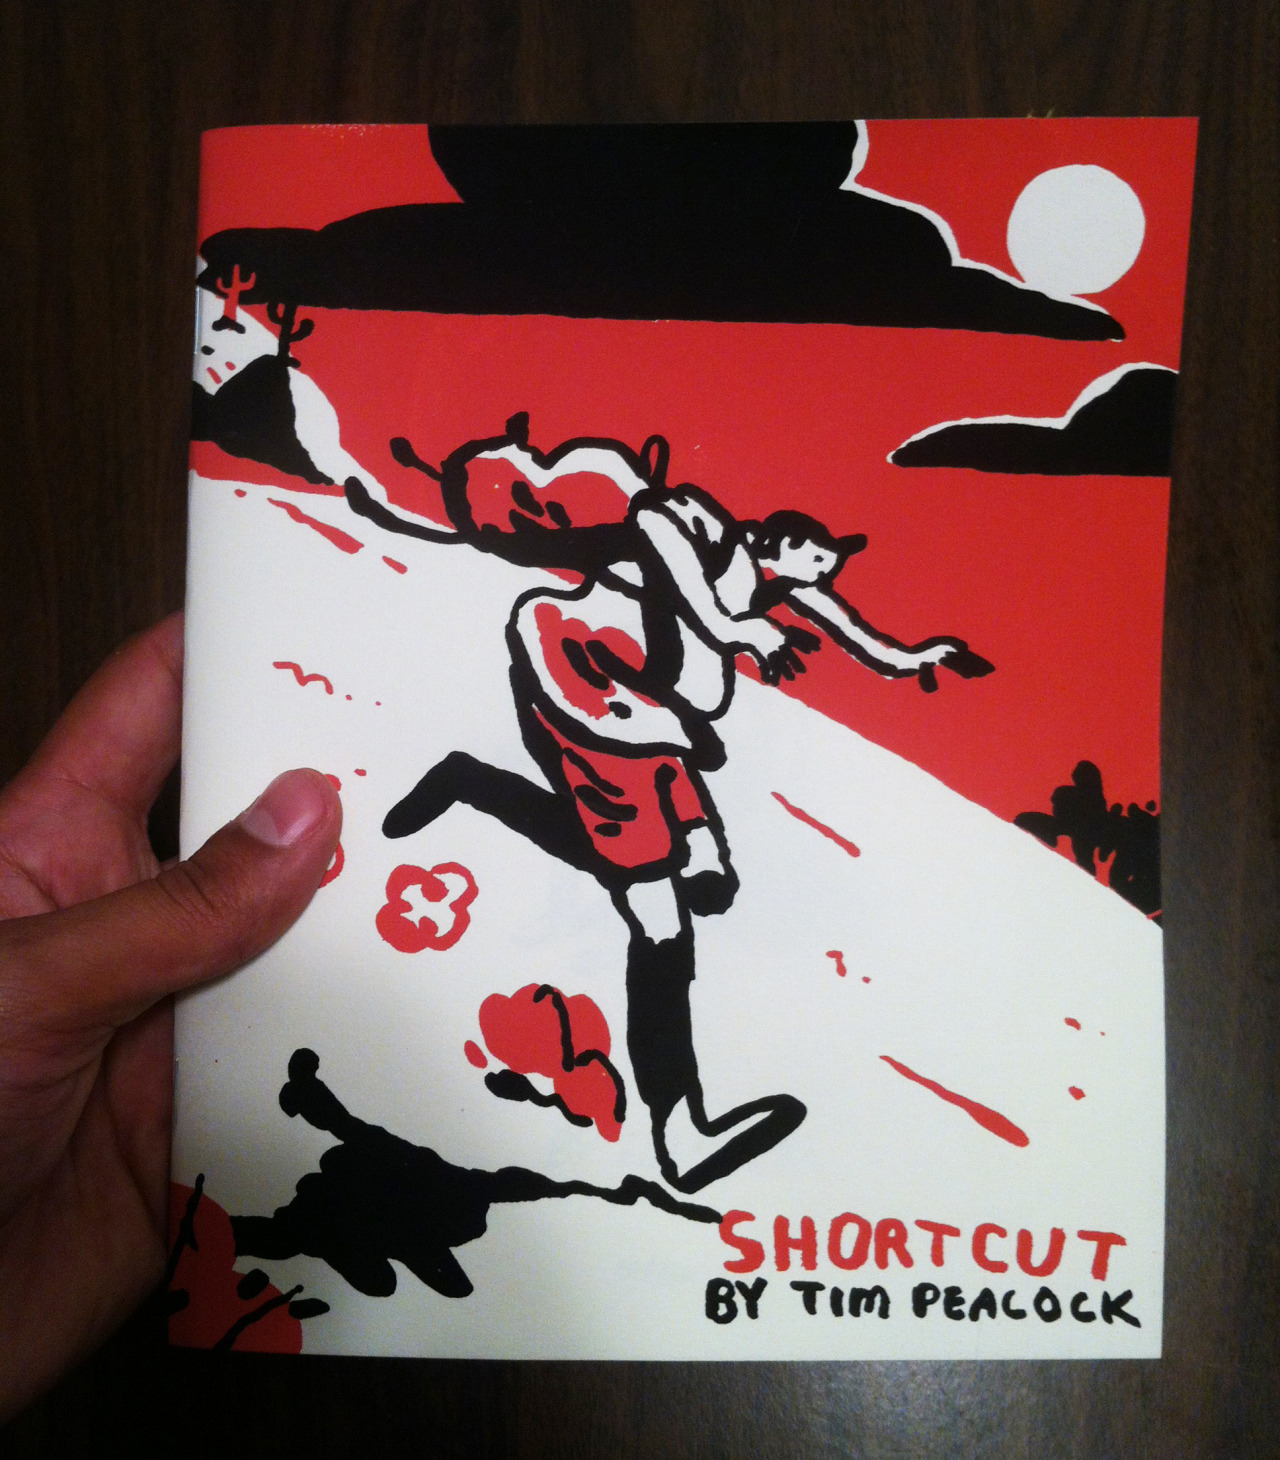 Announcing Shortcut: An adventure of a boy trying to find his way home. There's aliens, dragons, mad science, trolls, battles, mazes and more!  -8.5x14 comic. 28 pages full color saddle bound -Hand Screen Printed cover. Nice, thick 80lb paper -Only 30 printed signed and numbered *super rare!* -Only $15 including shipping  Purchase with Paypal ;) (make sure you have your mailing address in there so I know where to send them)